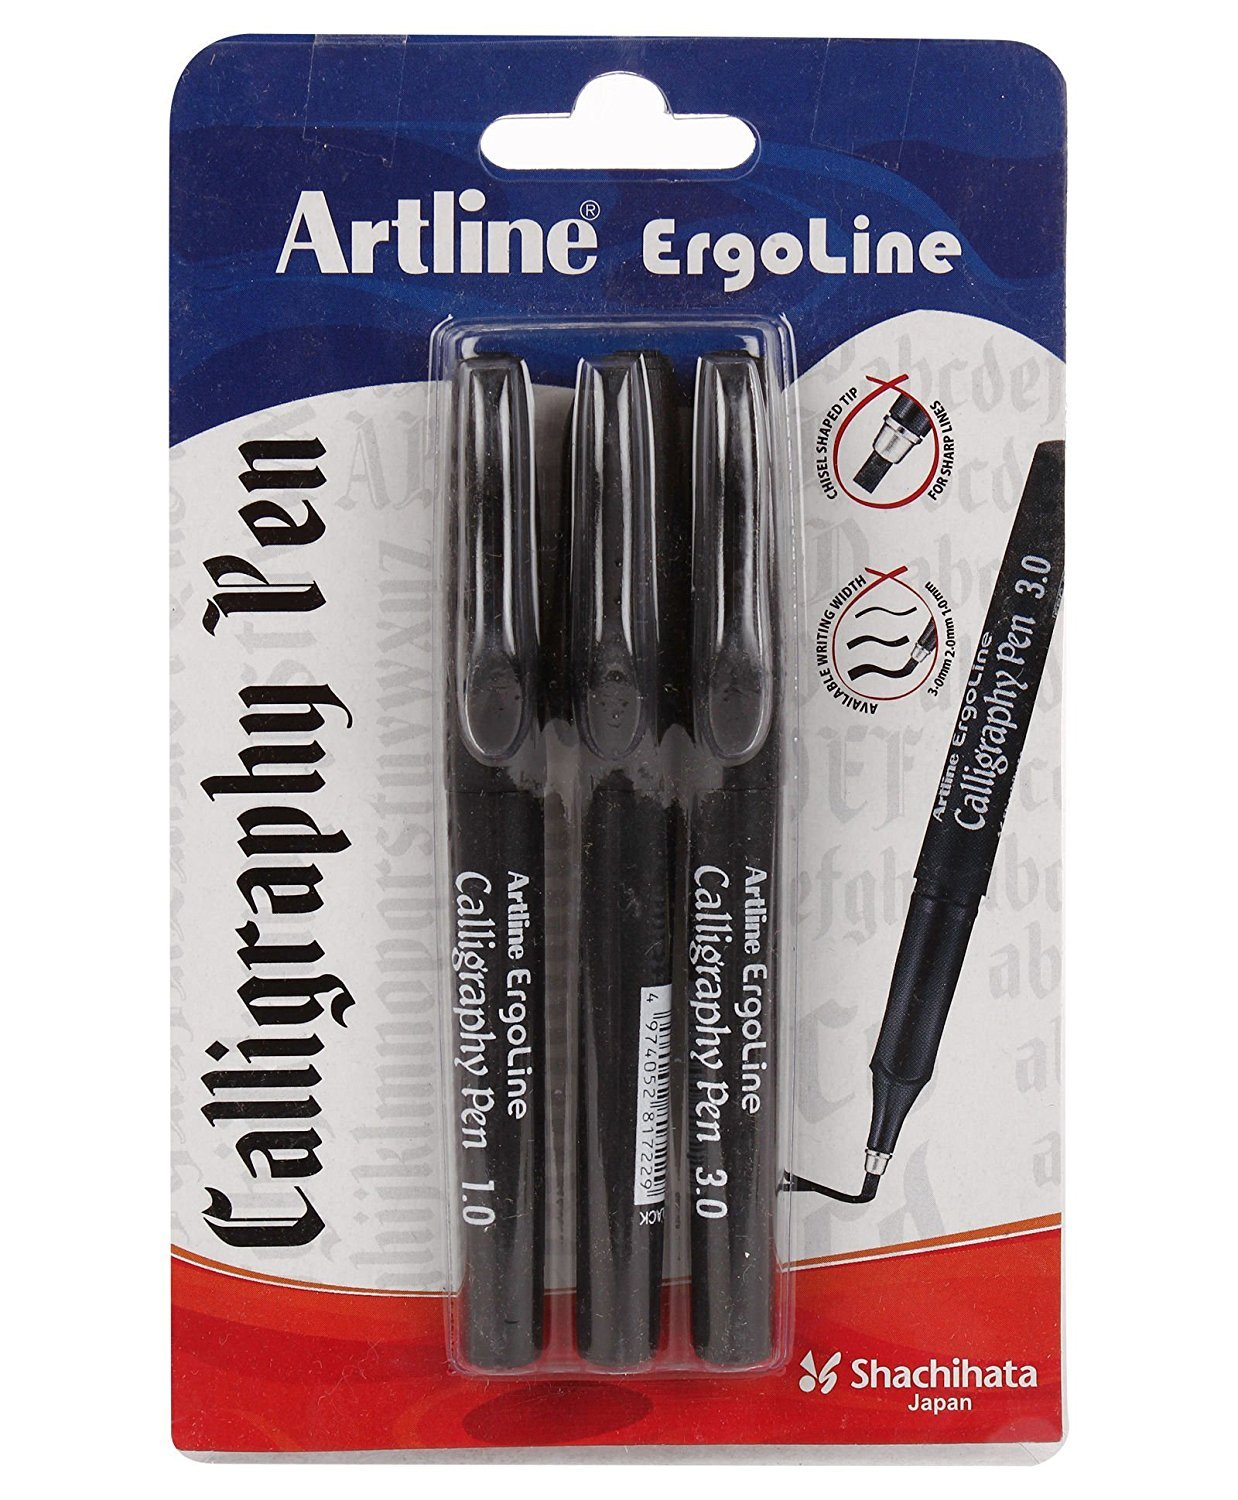 Artline Ergoline Calligraphy Pen Set with 3 Nib Sizes - Pack of 3 (Black)